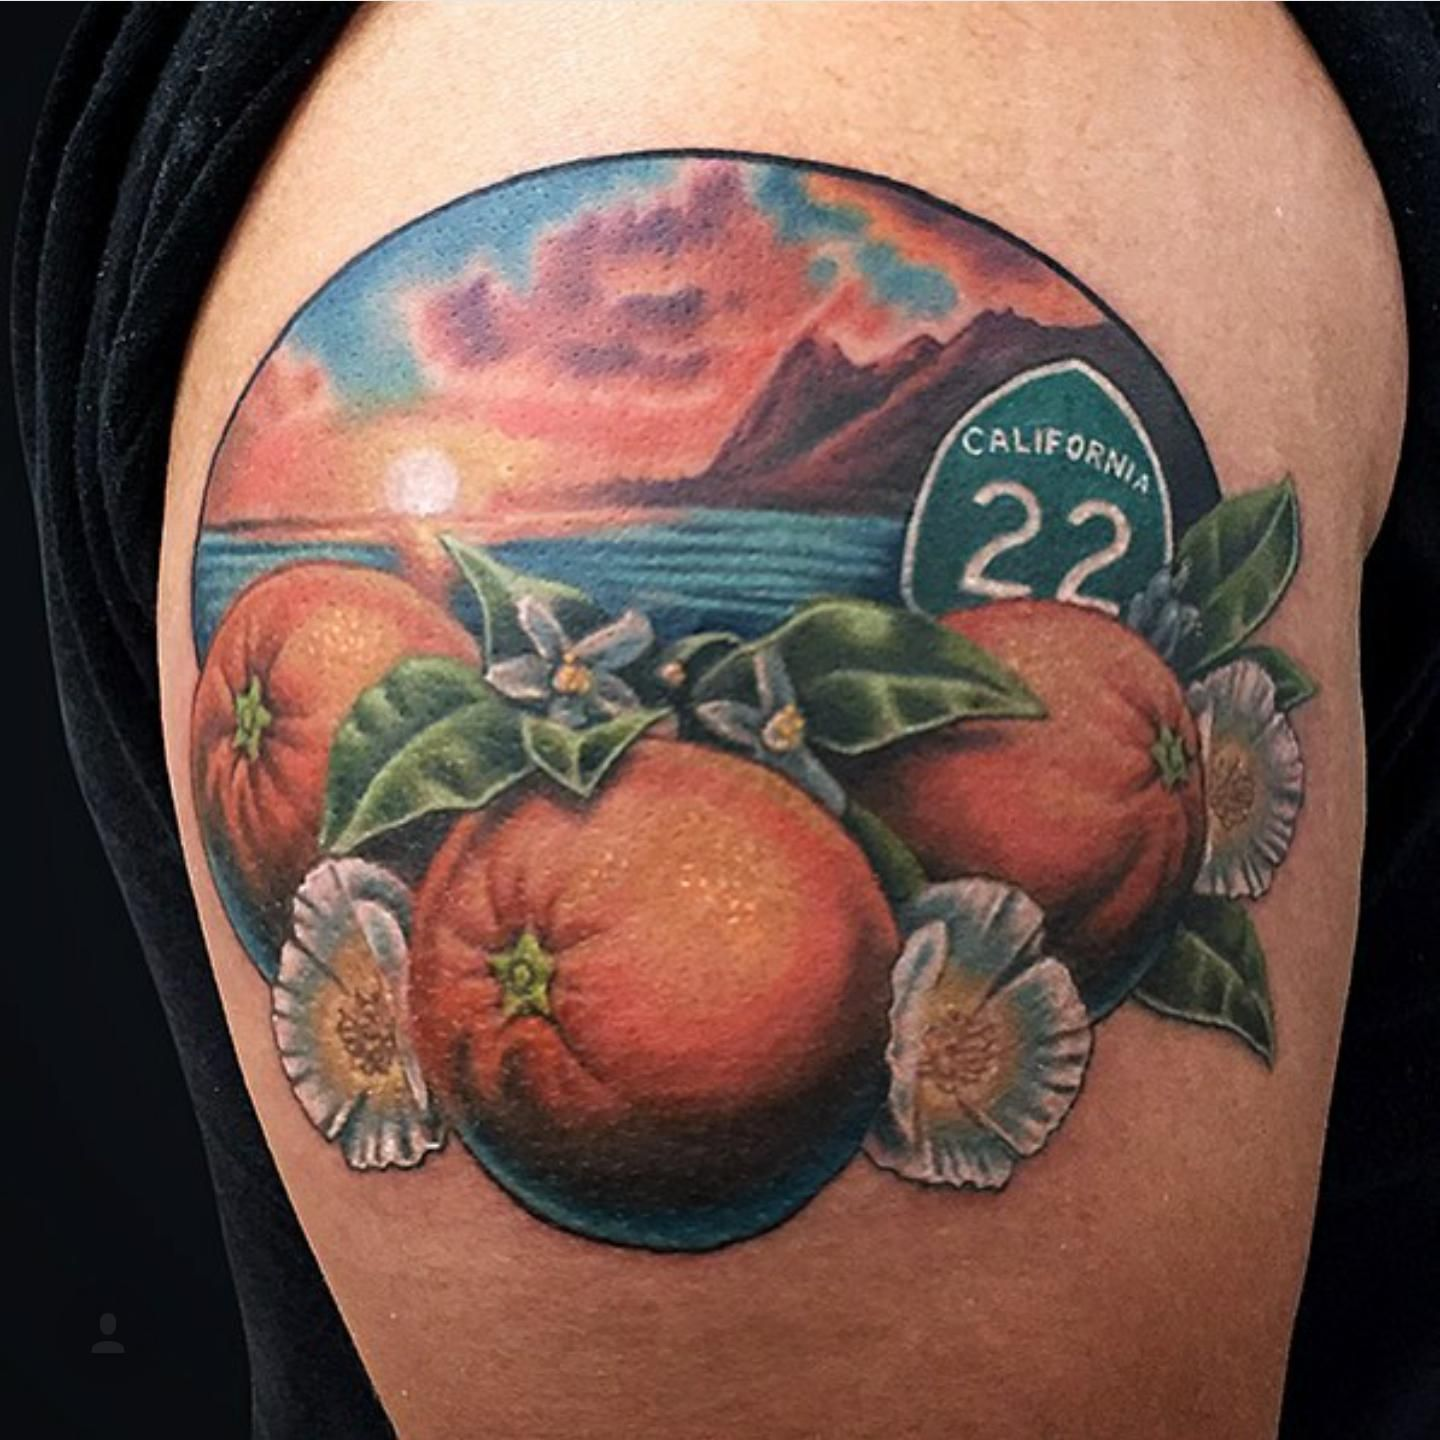 First tattoo orange county themed done by marc durrant at